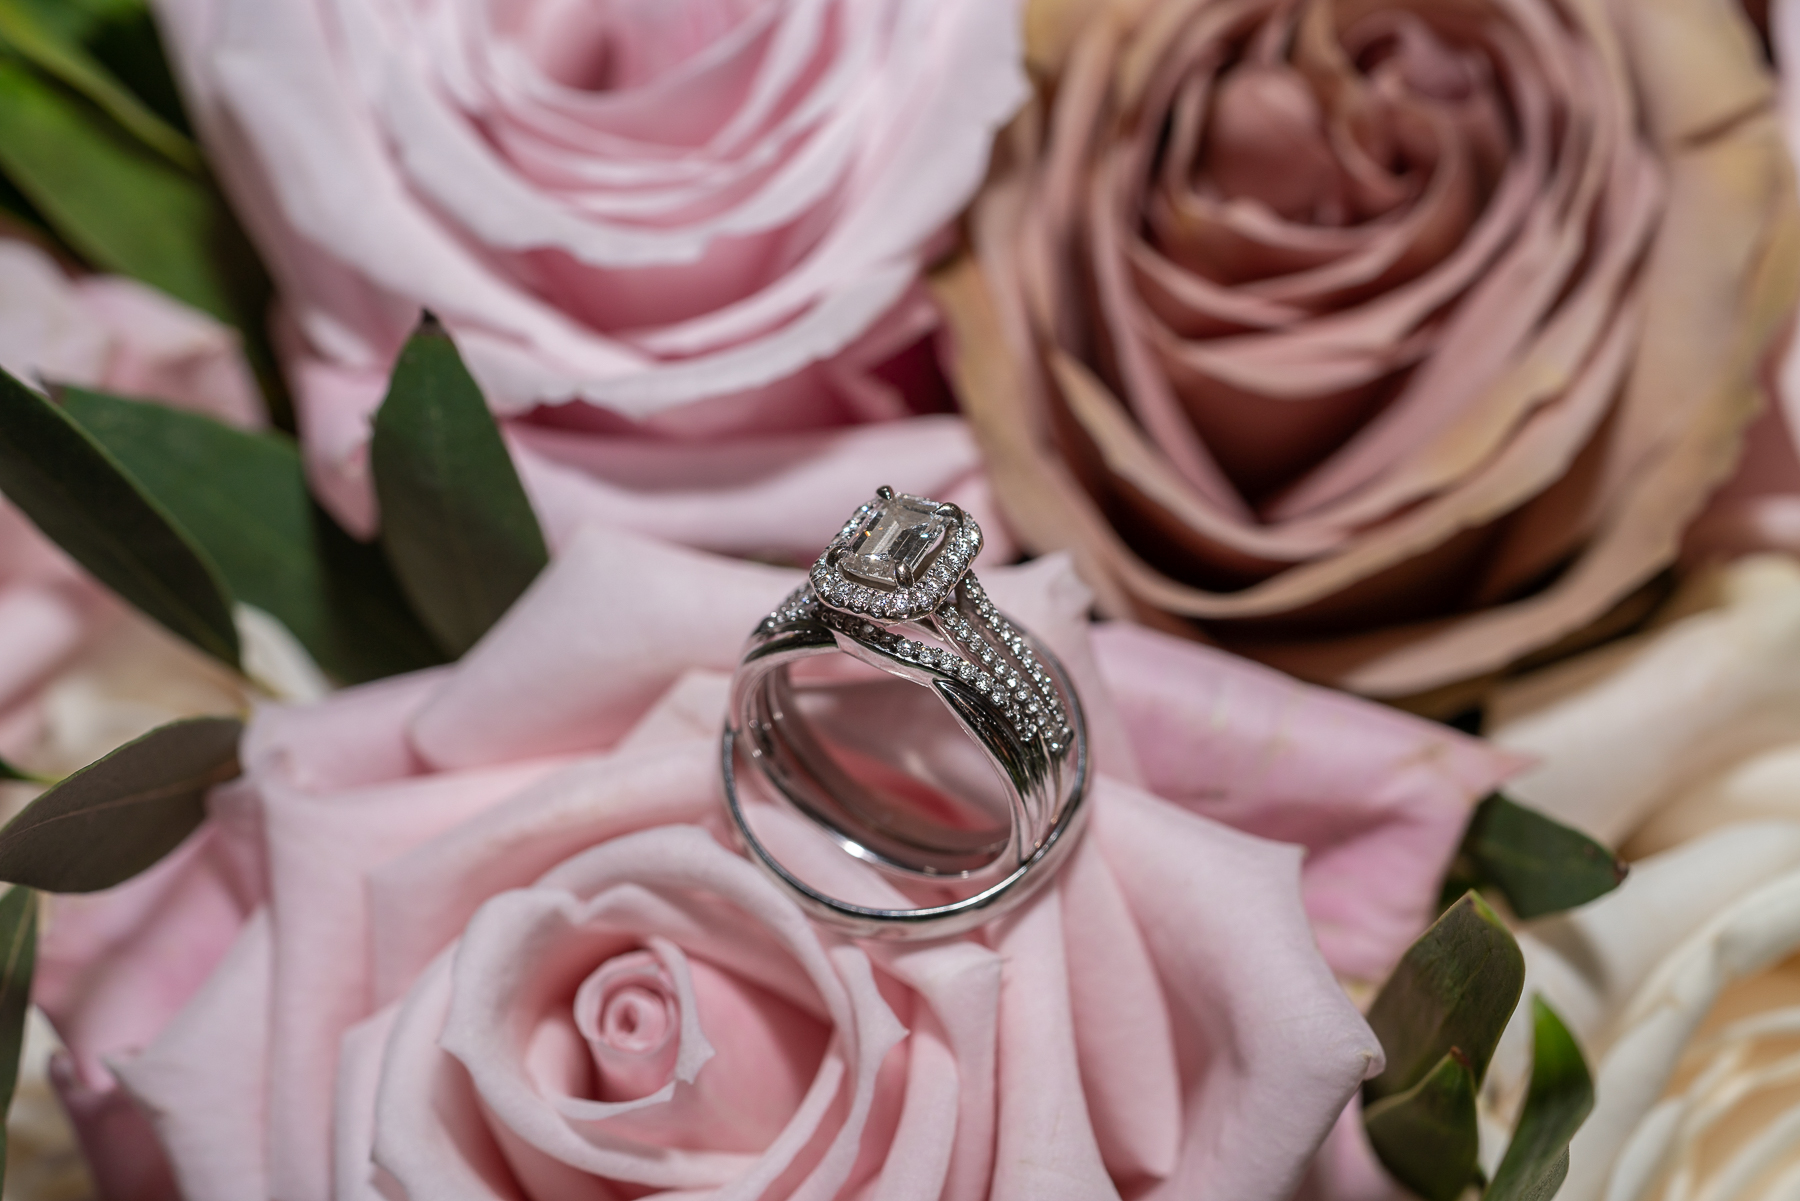 The rings nestled on the Bride's bouquet.